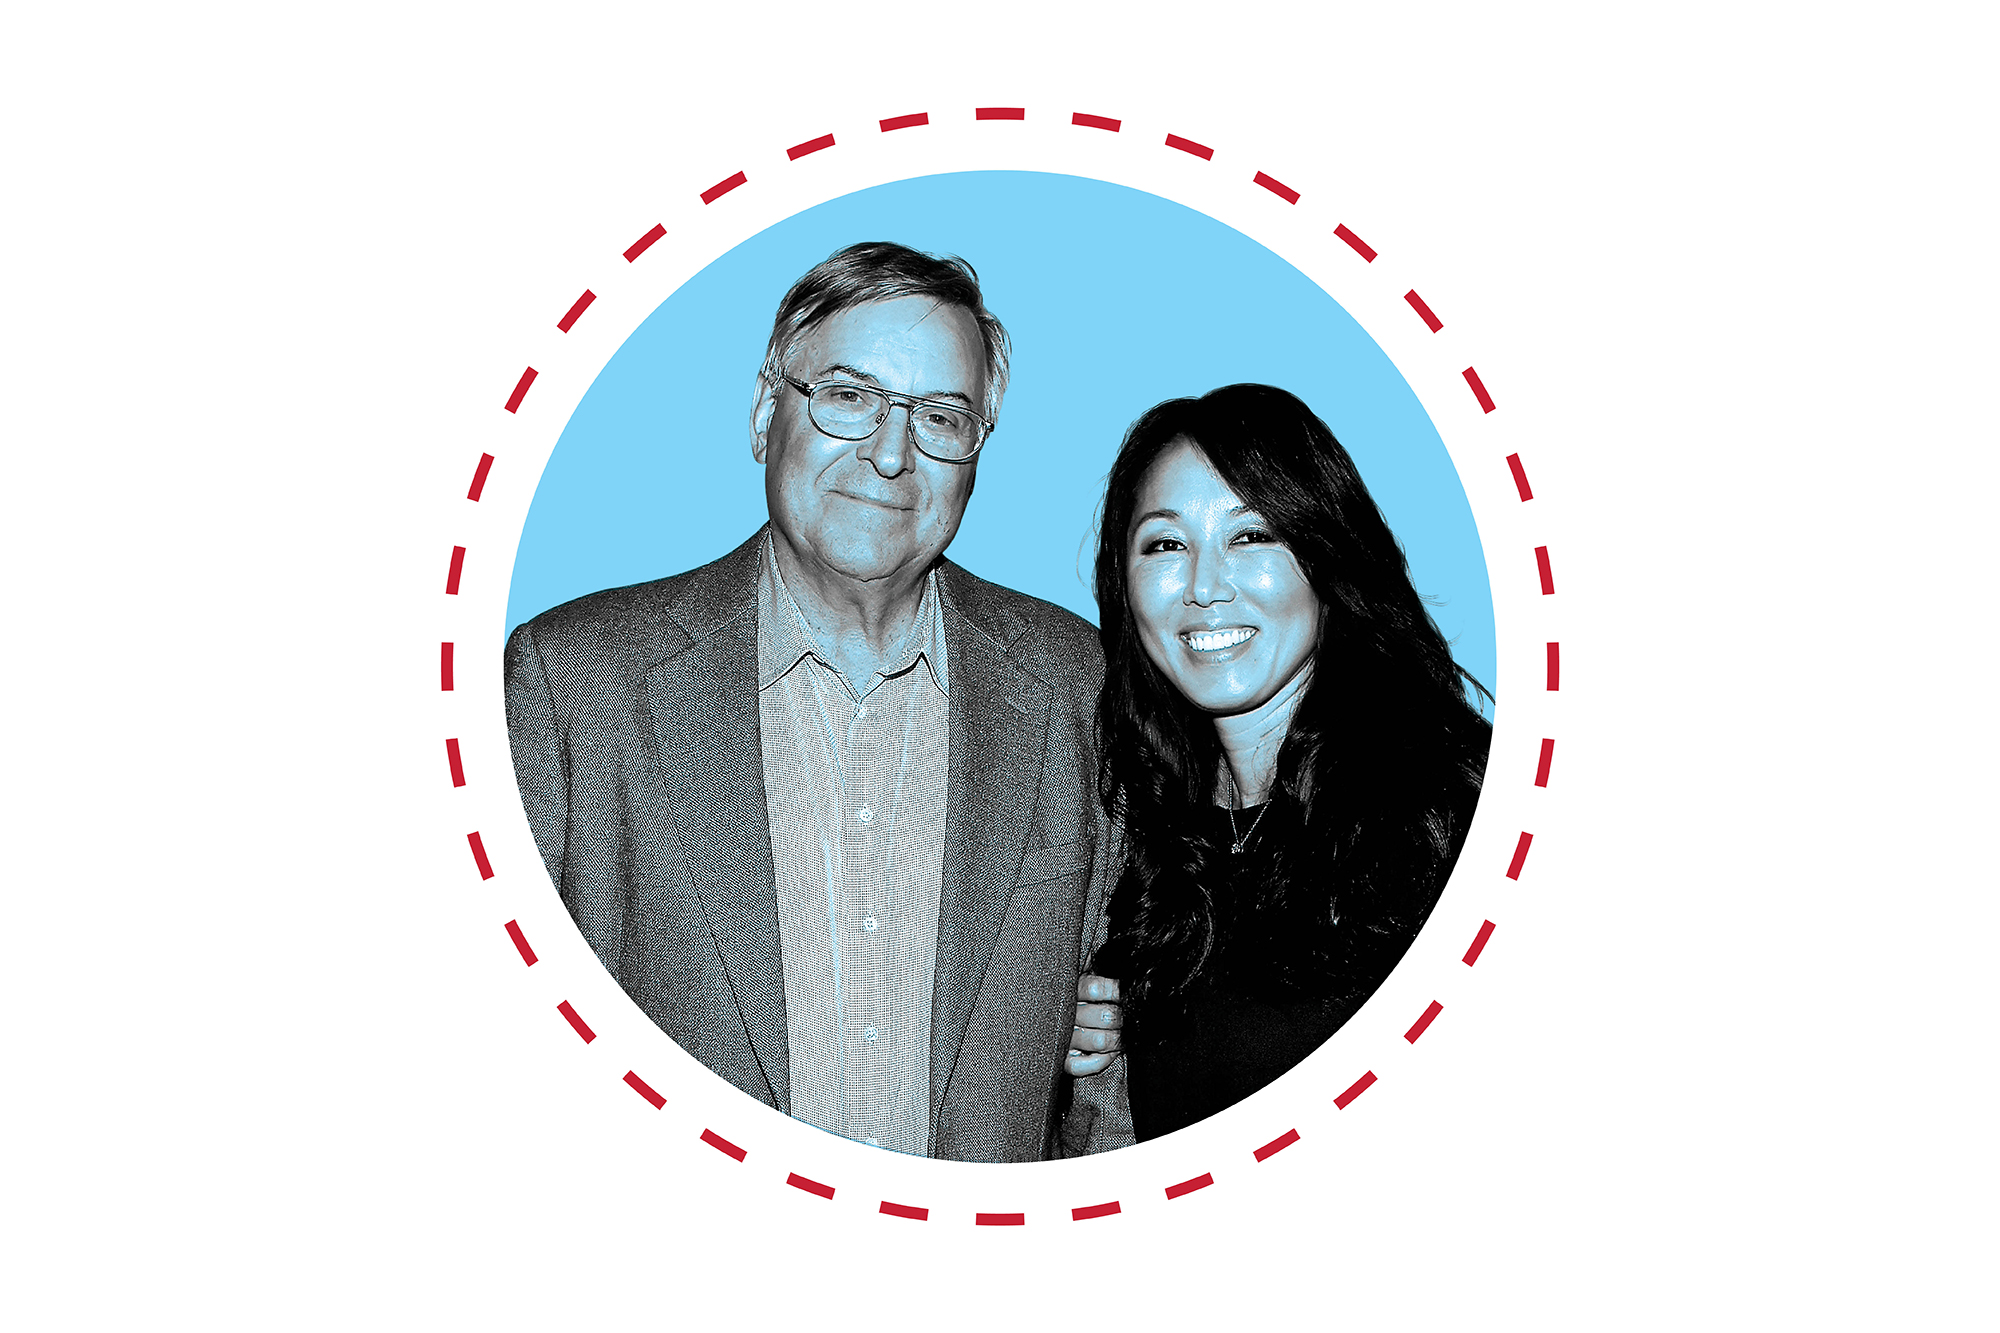 Buffalo Bills Owner: Terry Pegula, Kim Pegula net worth, political donations